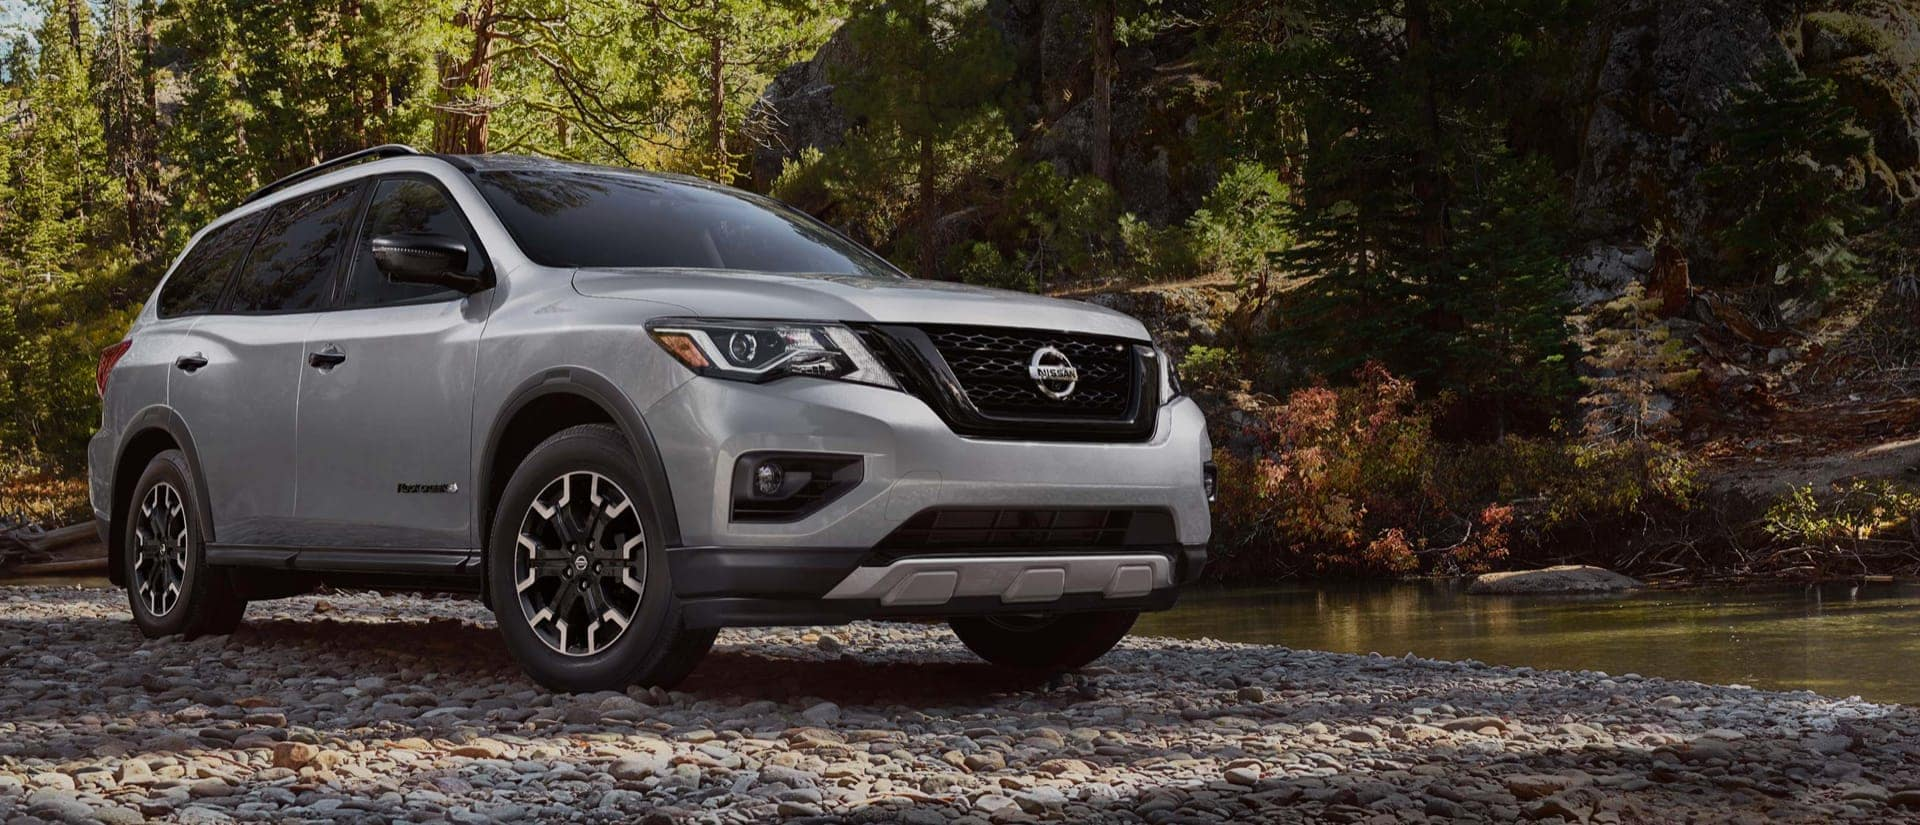 New Grey Nissan Rogue in Woods